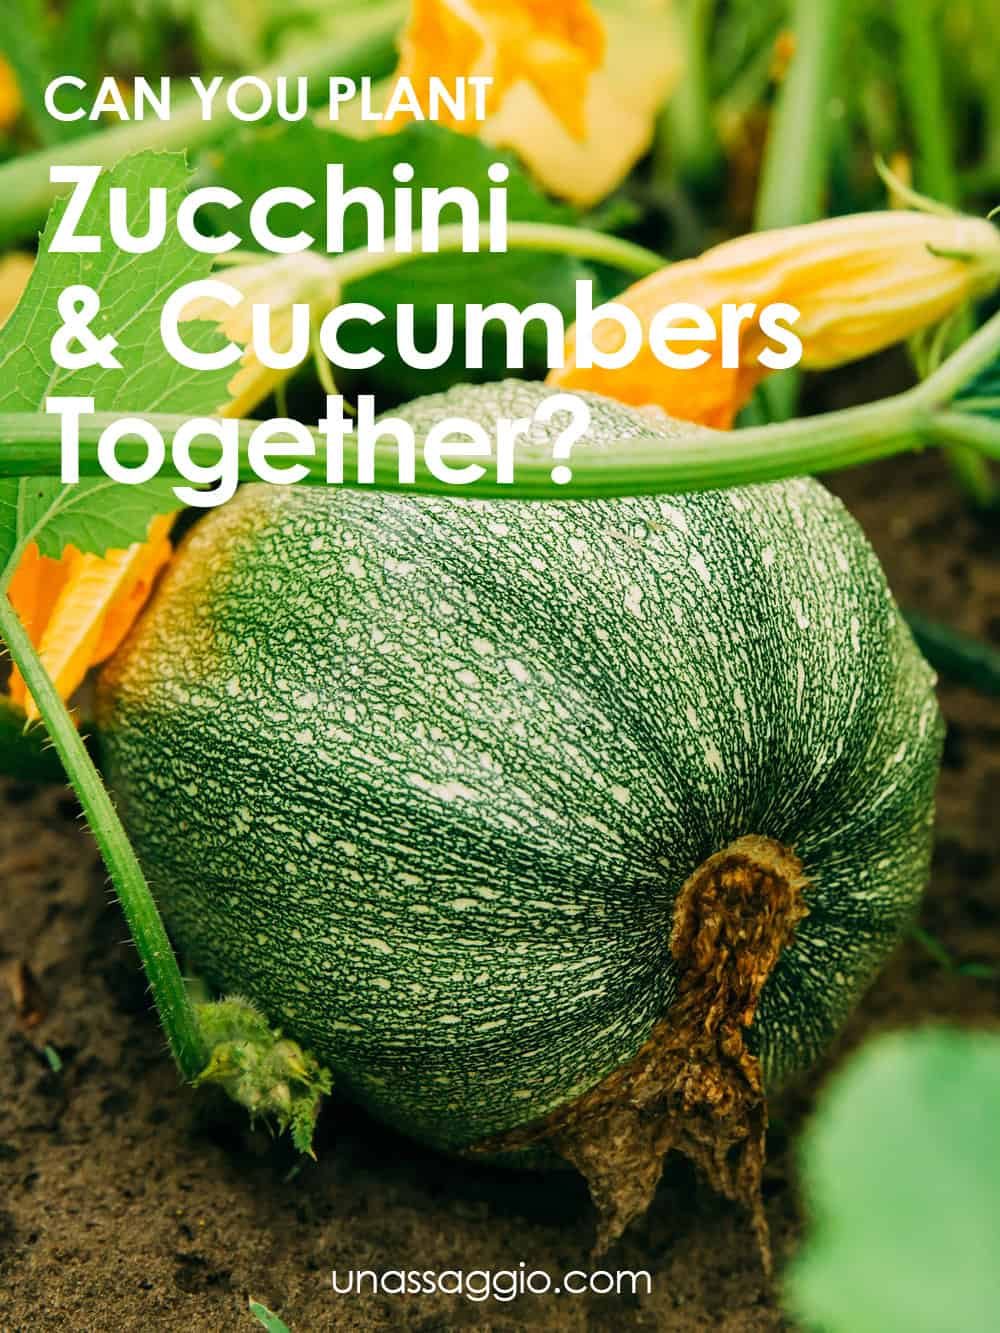 Can You Plant Zucchini And Cucumbers Together?